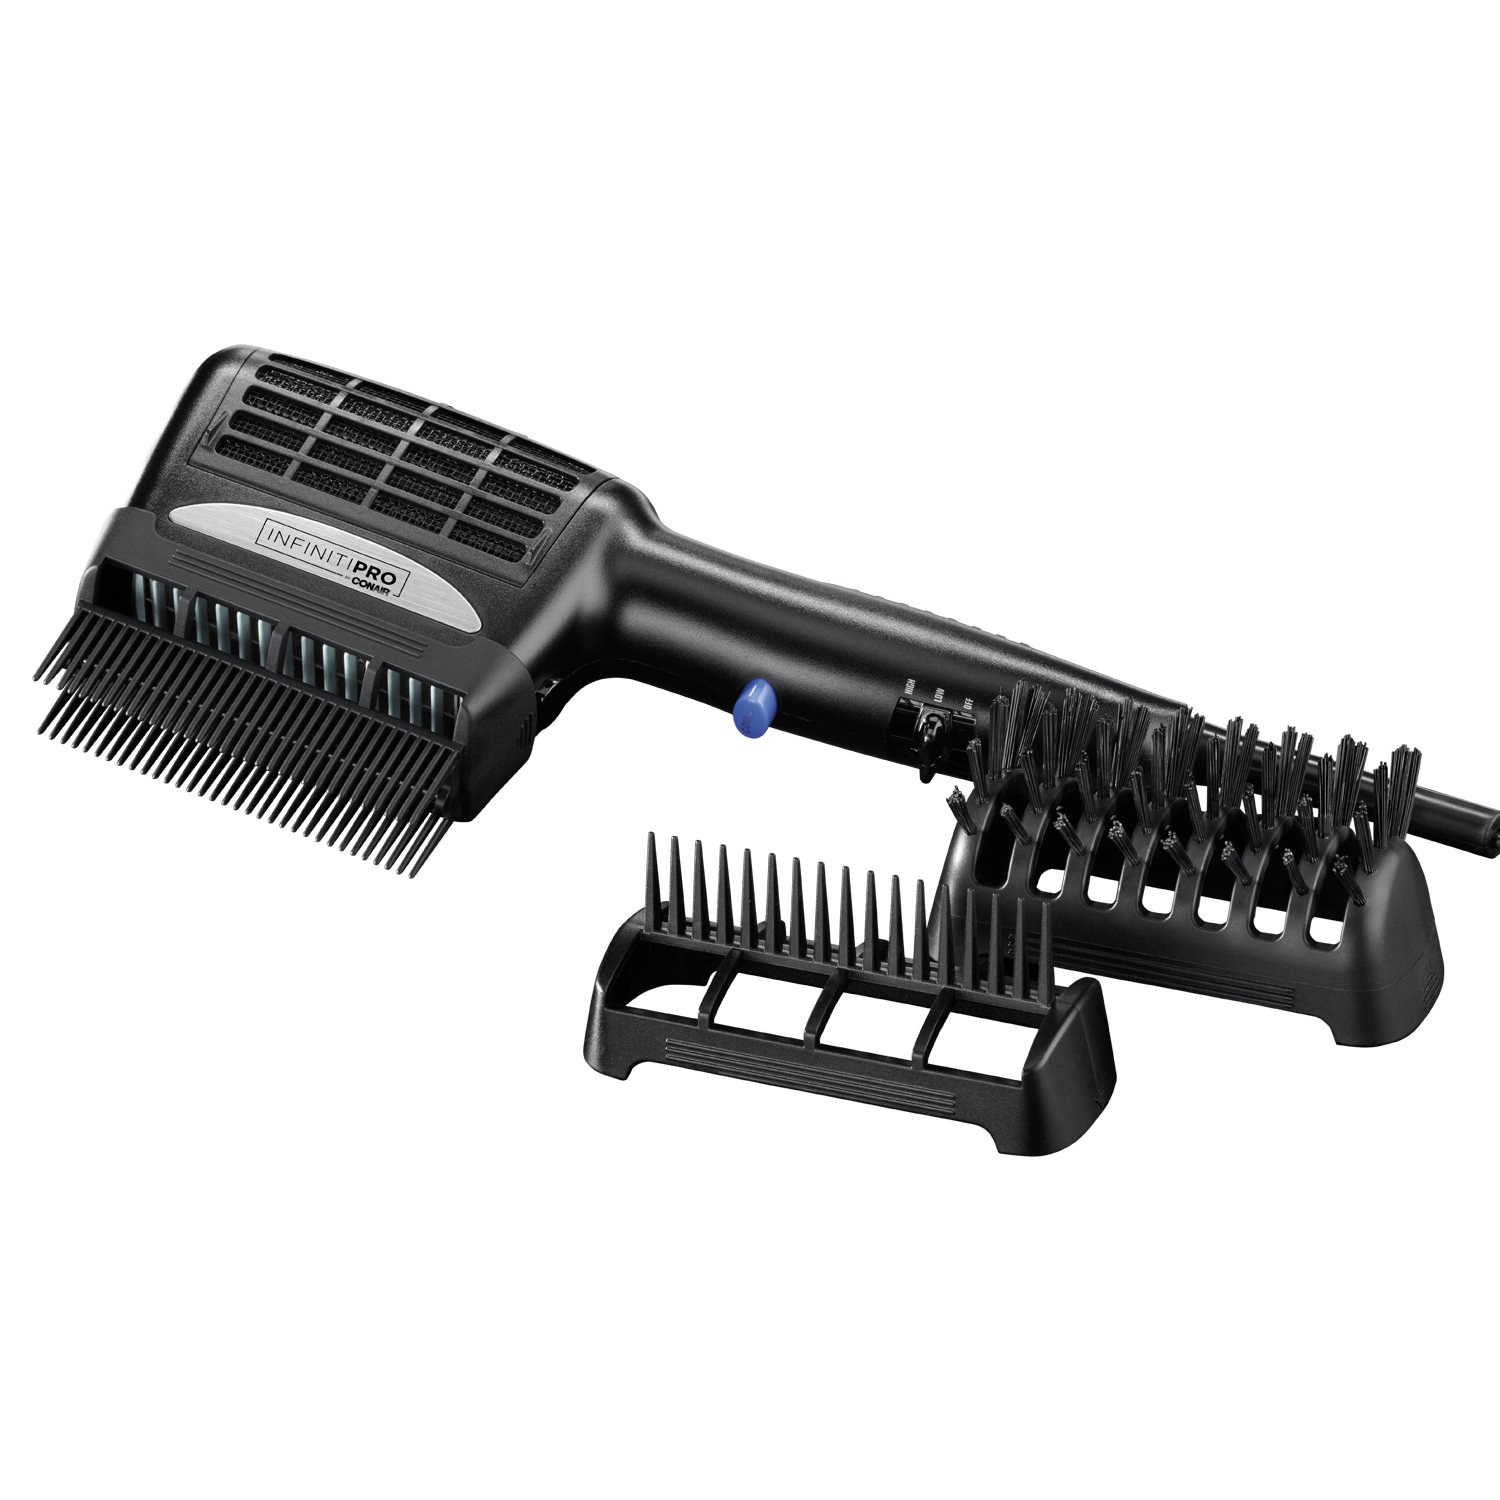 INFINITIPRO BY CONAIR 1875 Watt 3-in-1 Ceramic Styler; 3 Attachments to Detangle/Straighten/Volumize